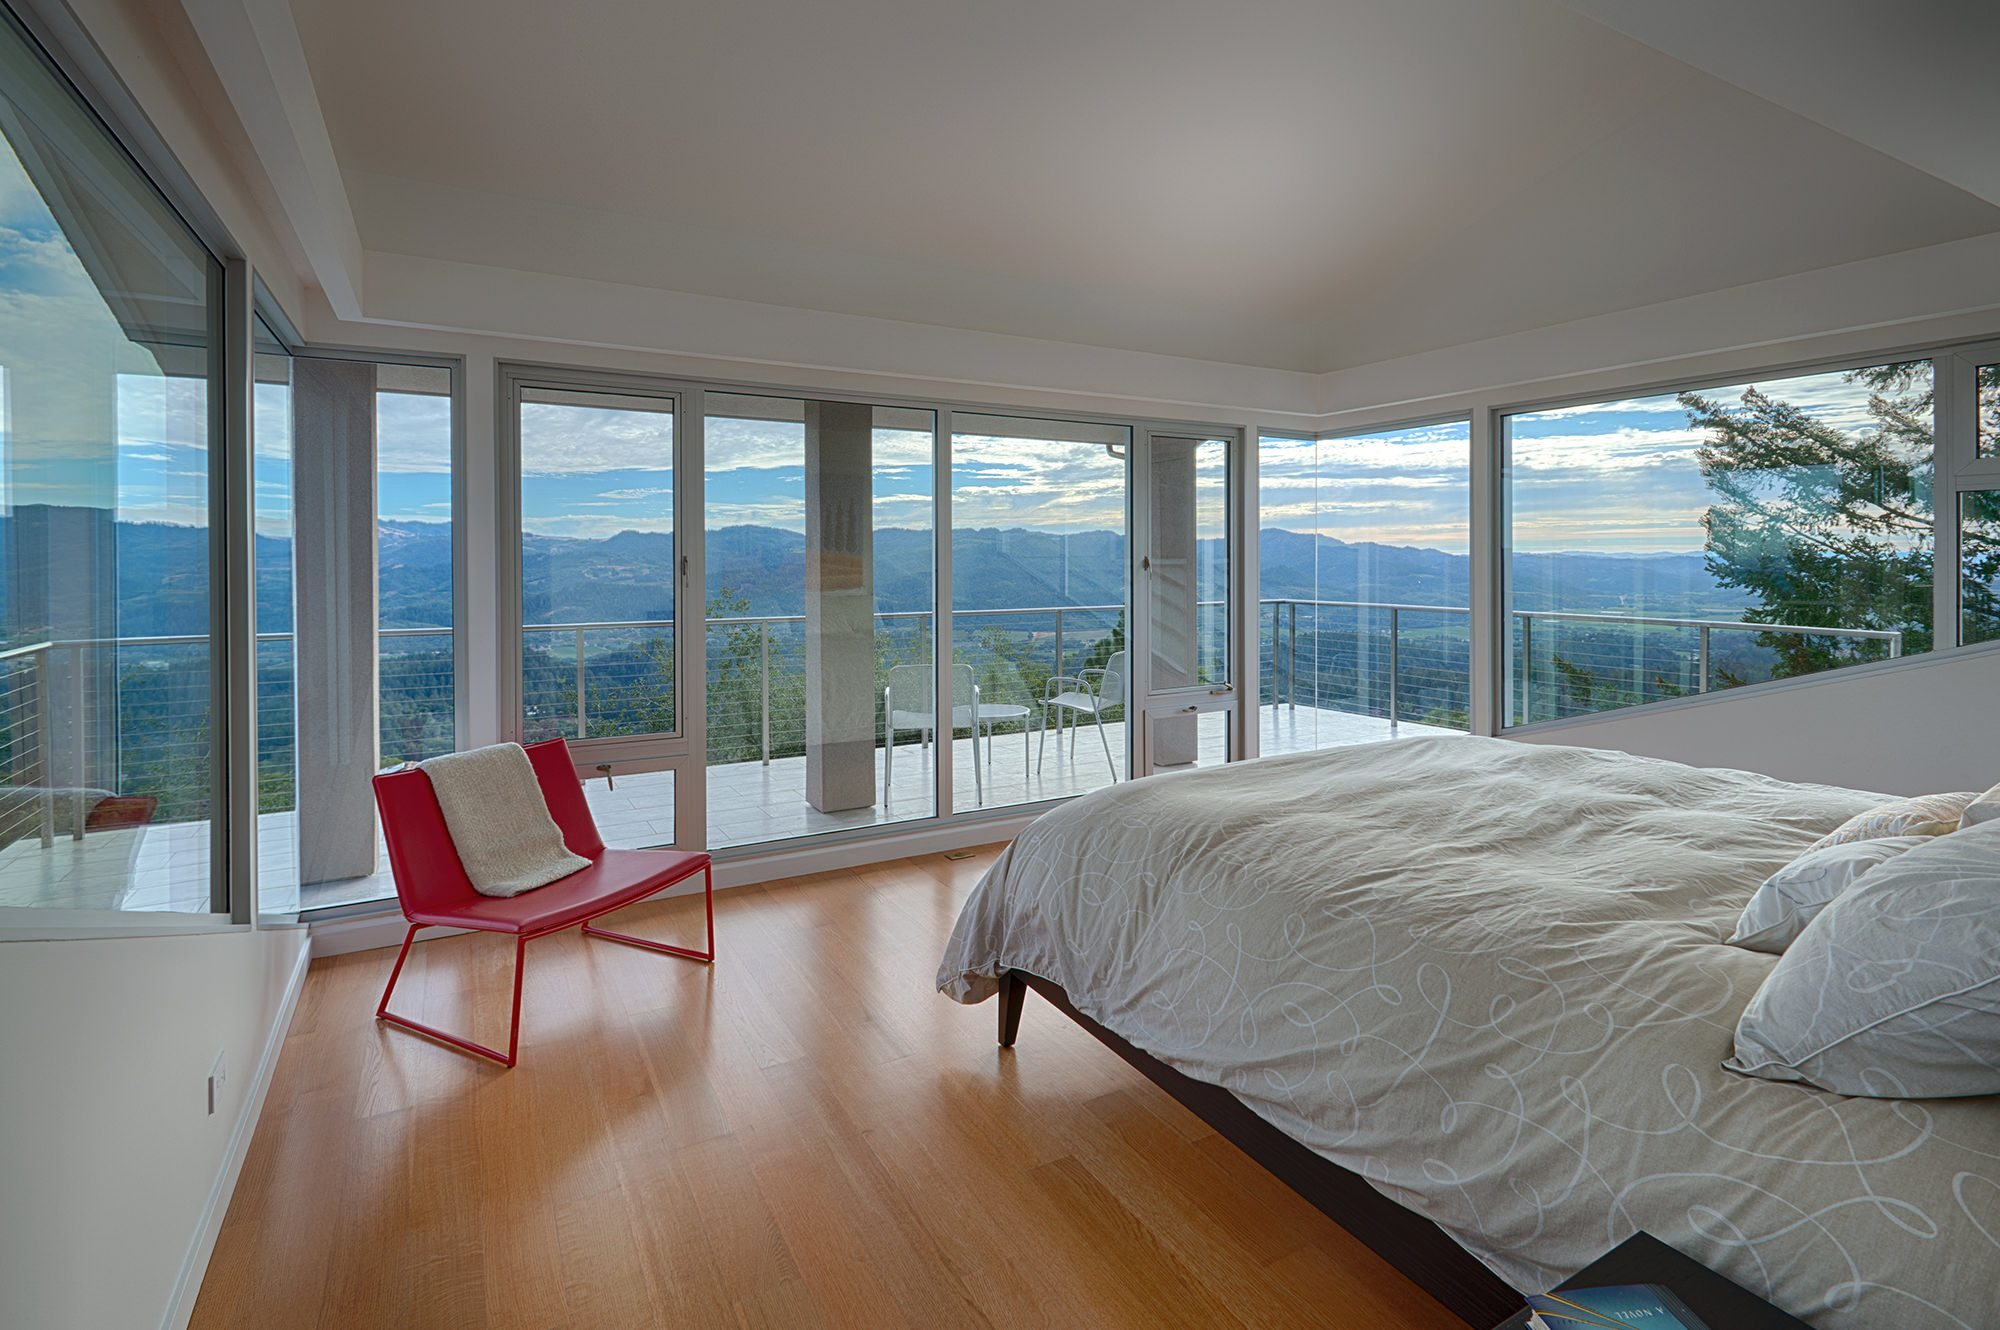 Bedroom Overlooking Napa Valley